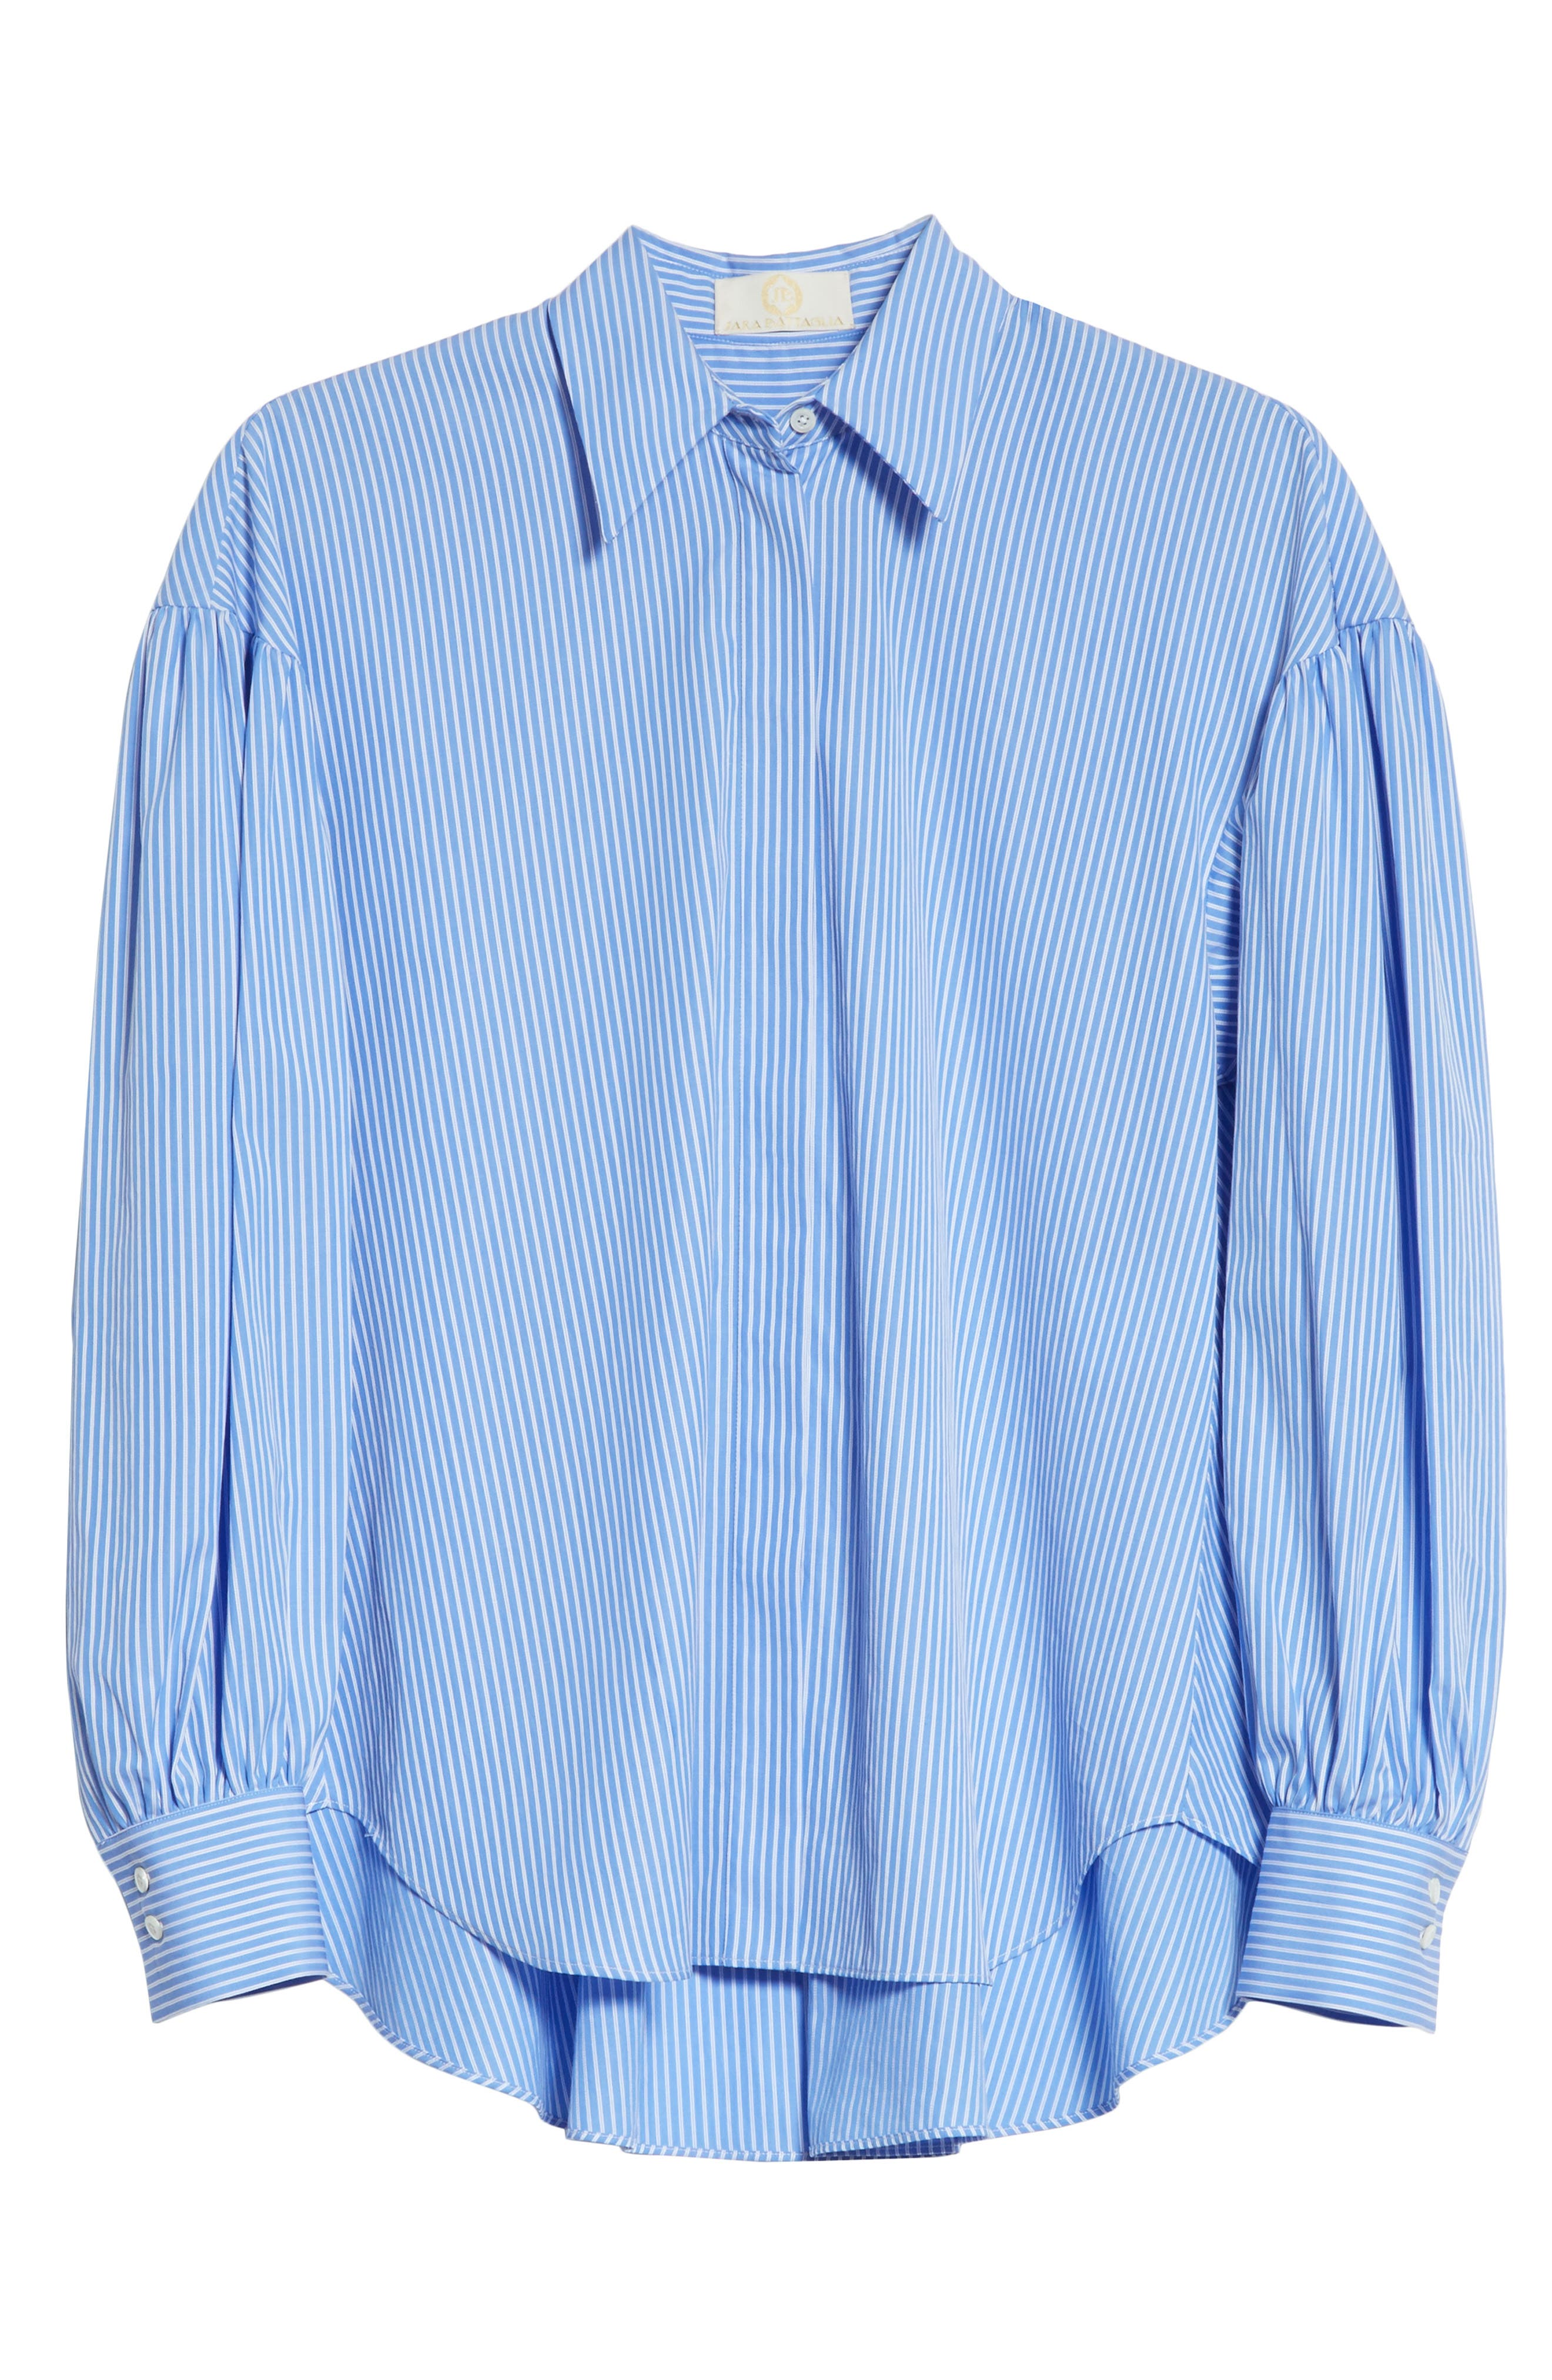 Stripe Puff Sleeve Shirt,                             Alternate thumbnail 6, color,                             400